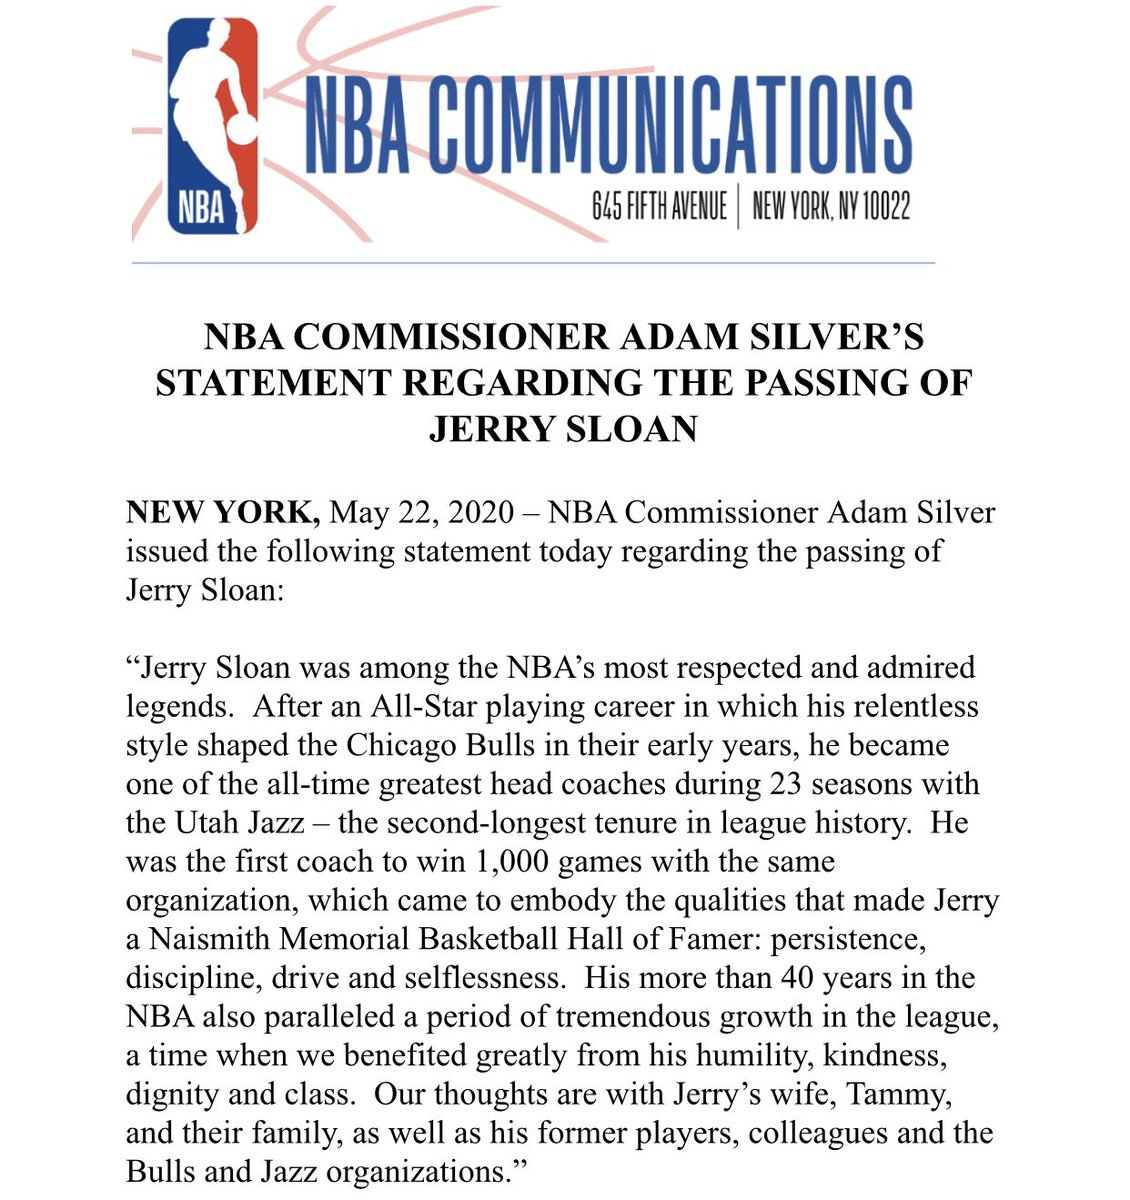 NBA Commissioner Adam Silver issued the following statement today regarding the passing of Jerry Sloan https://t.co/9E8xtx72Rg